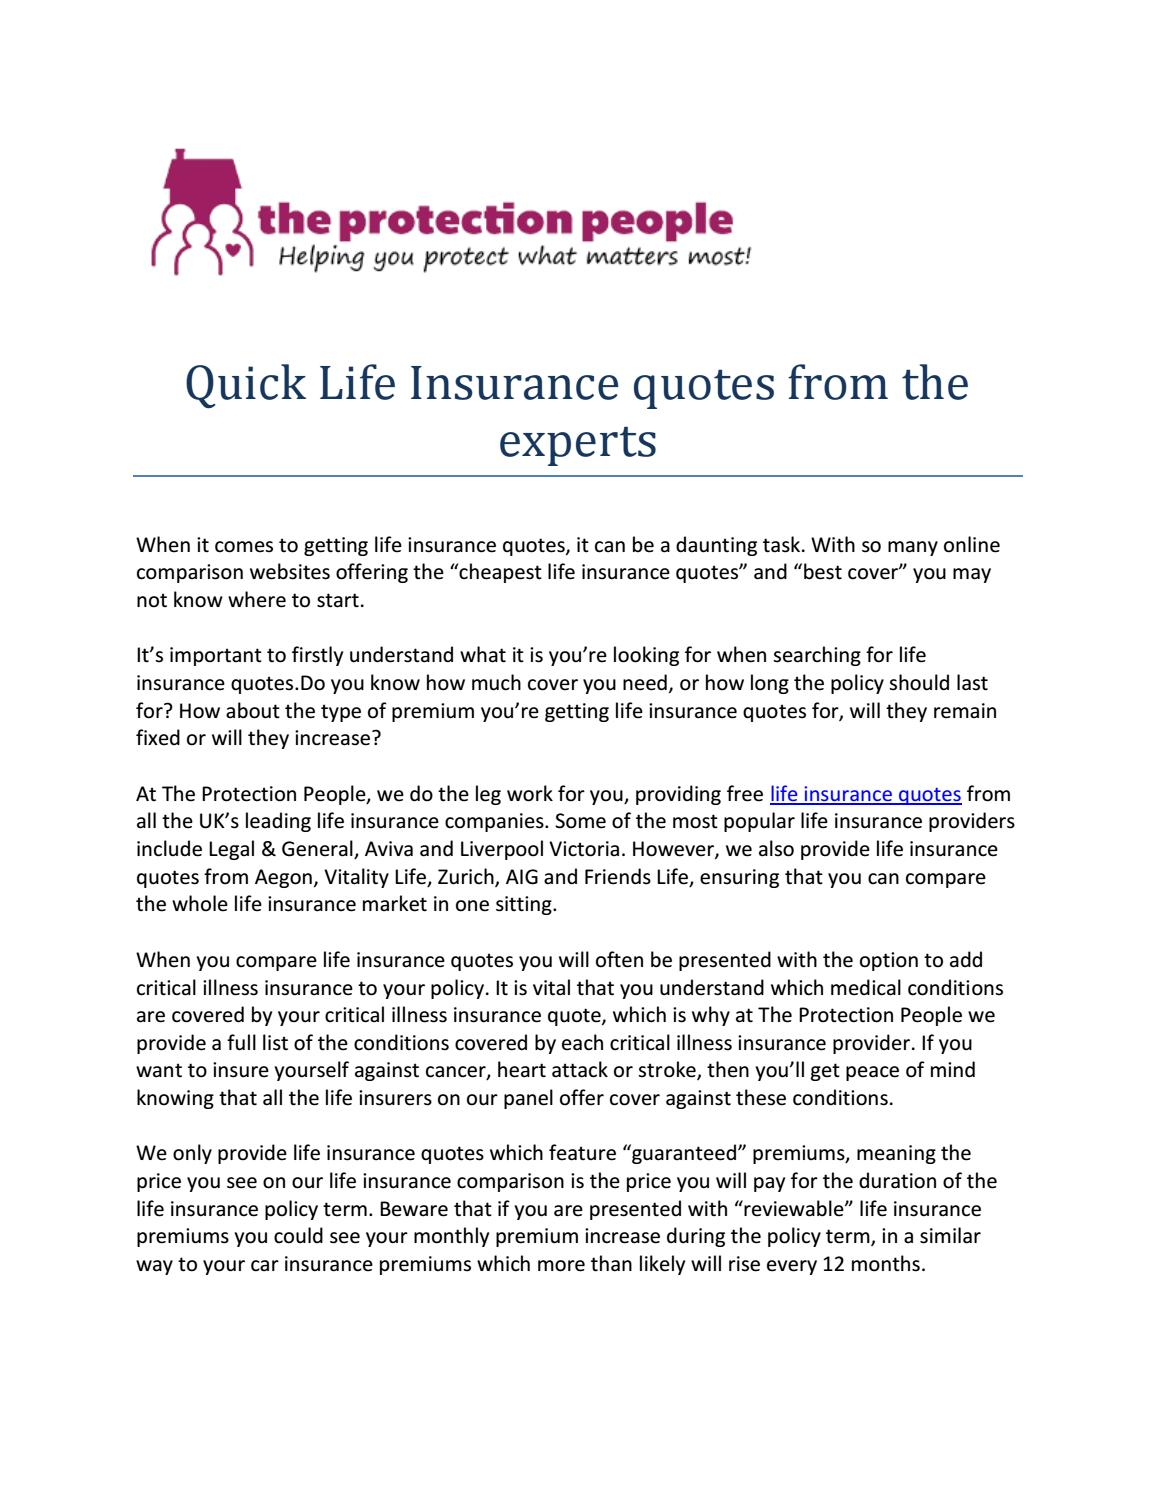 Looking For Life Insurance Quotes Glamorous The Protection People  Quick Life Insurance Quotes From The